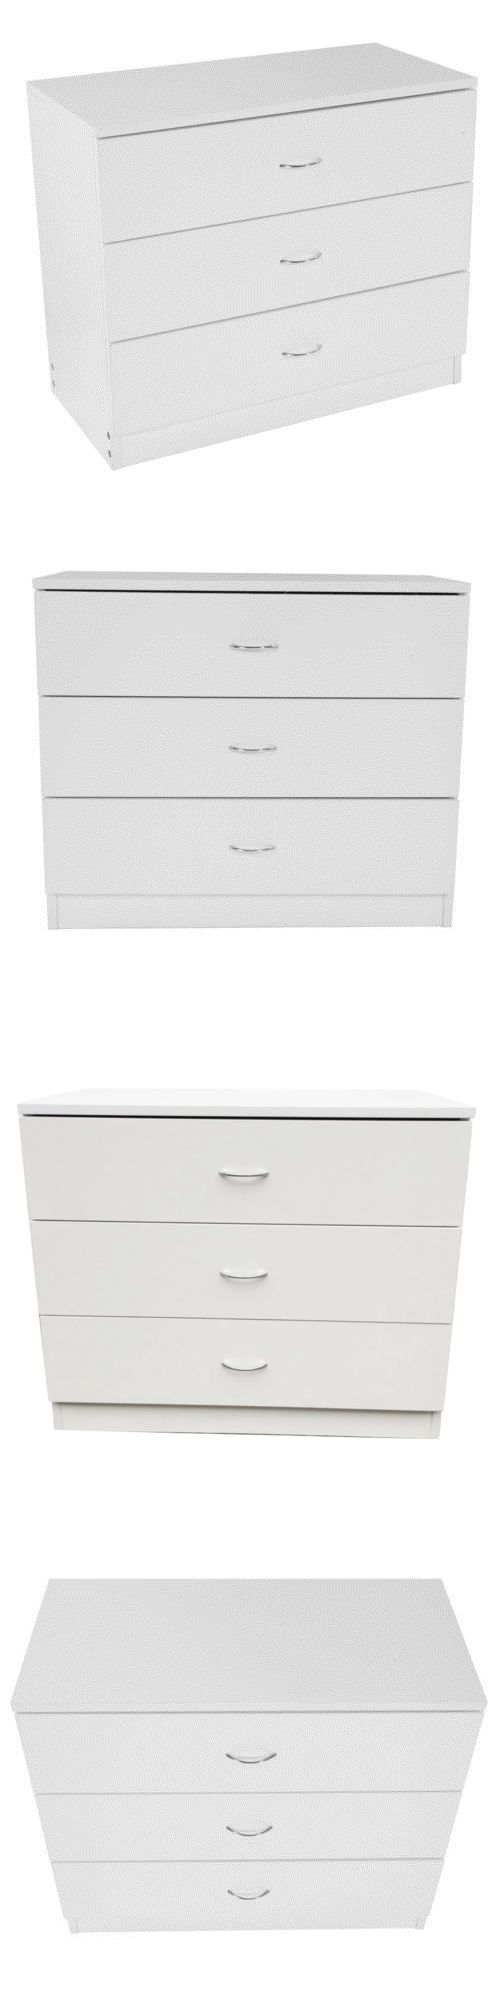 Dressers and Chests of Drawers 114397  New 3 Drawer Chest Nightstand  Storage Cabinet Bedroom FurnitureBest 25  White chest of drawers ideas only on Pinterest   White  . Hickory White Furniture Ebay. Home Design Ideas